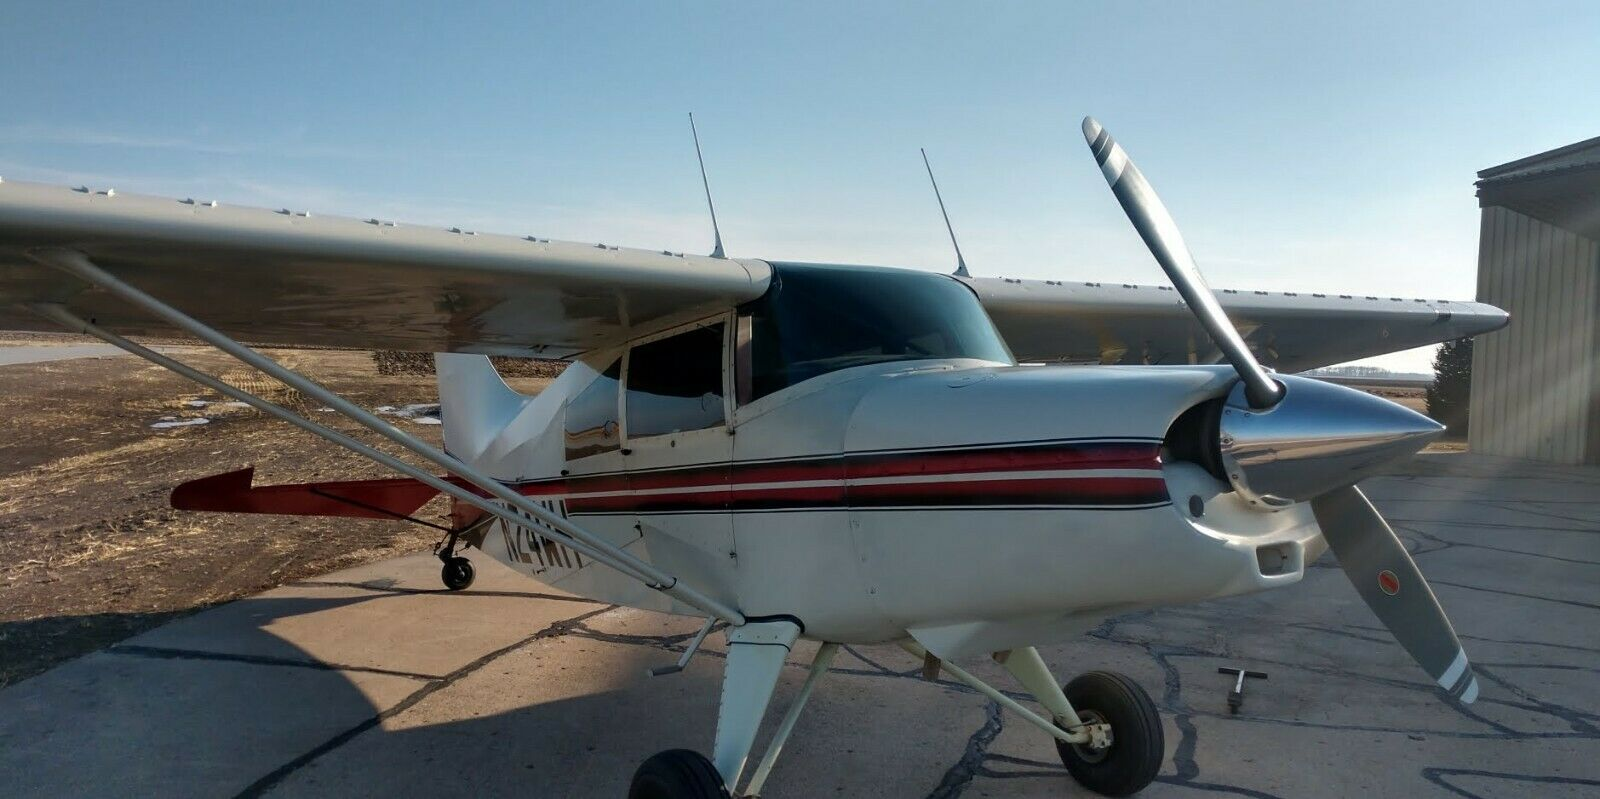 Airplane 1984 Maule M5-180C Rocket Good condition. Maintained by owner mechanic.